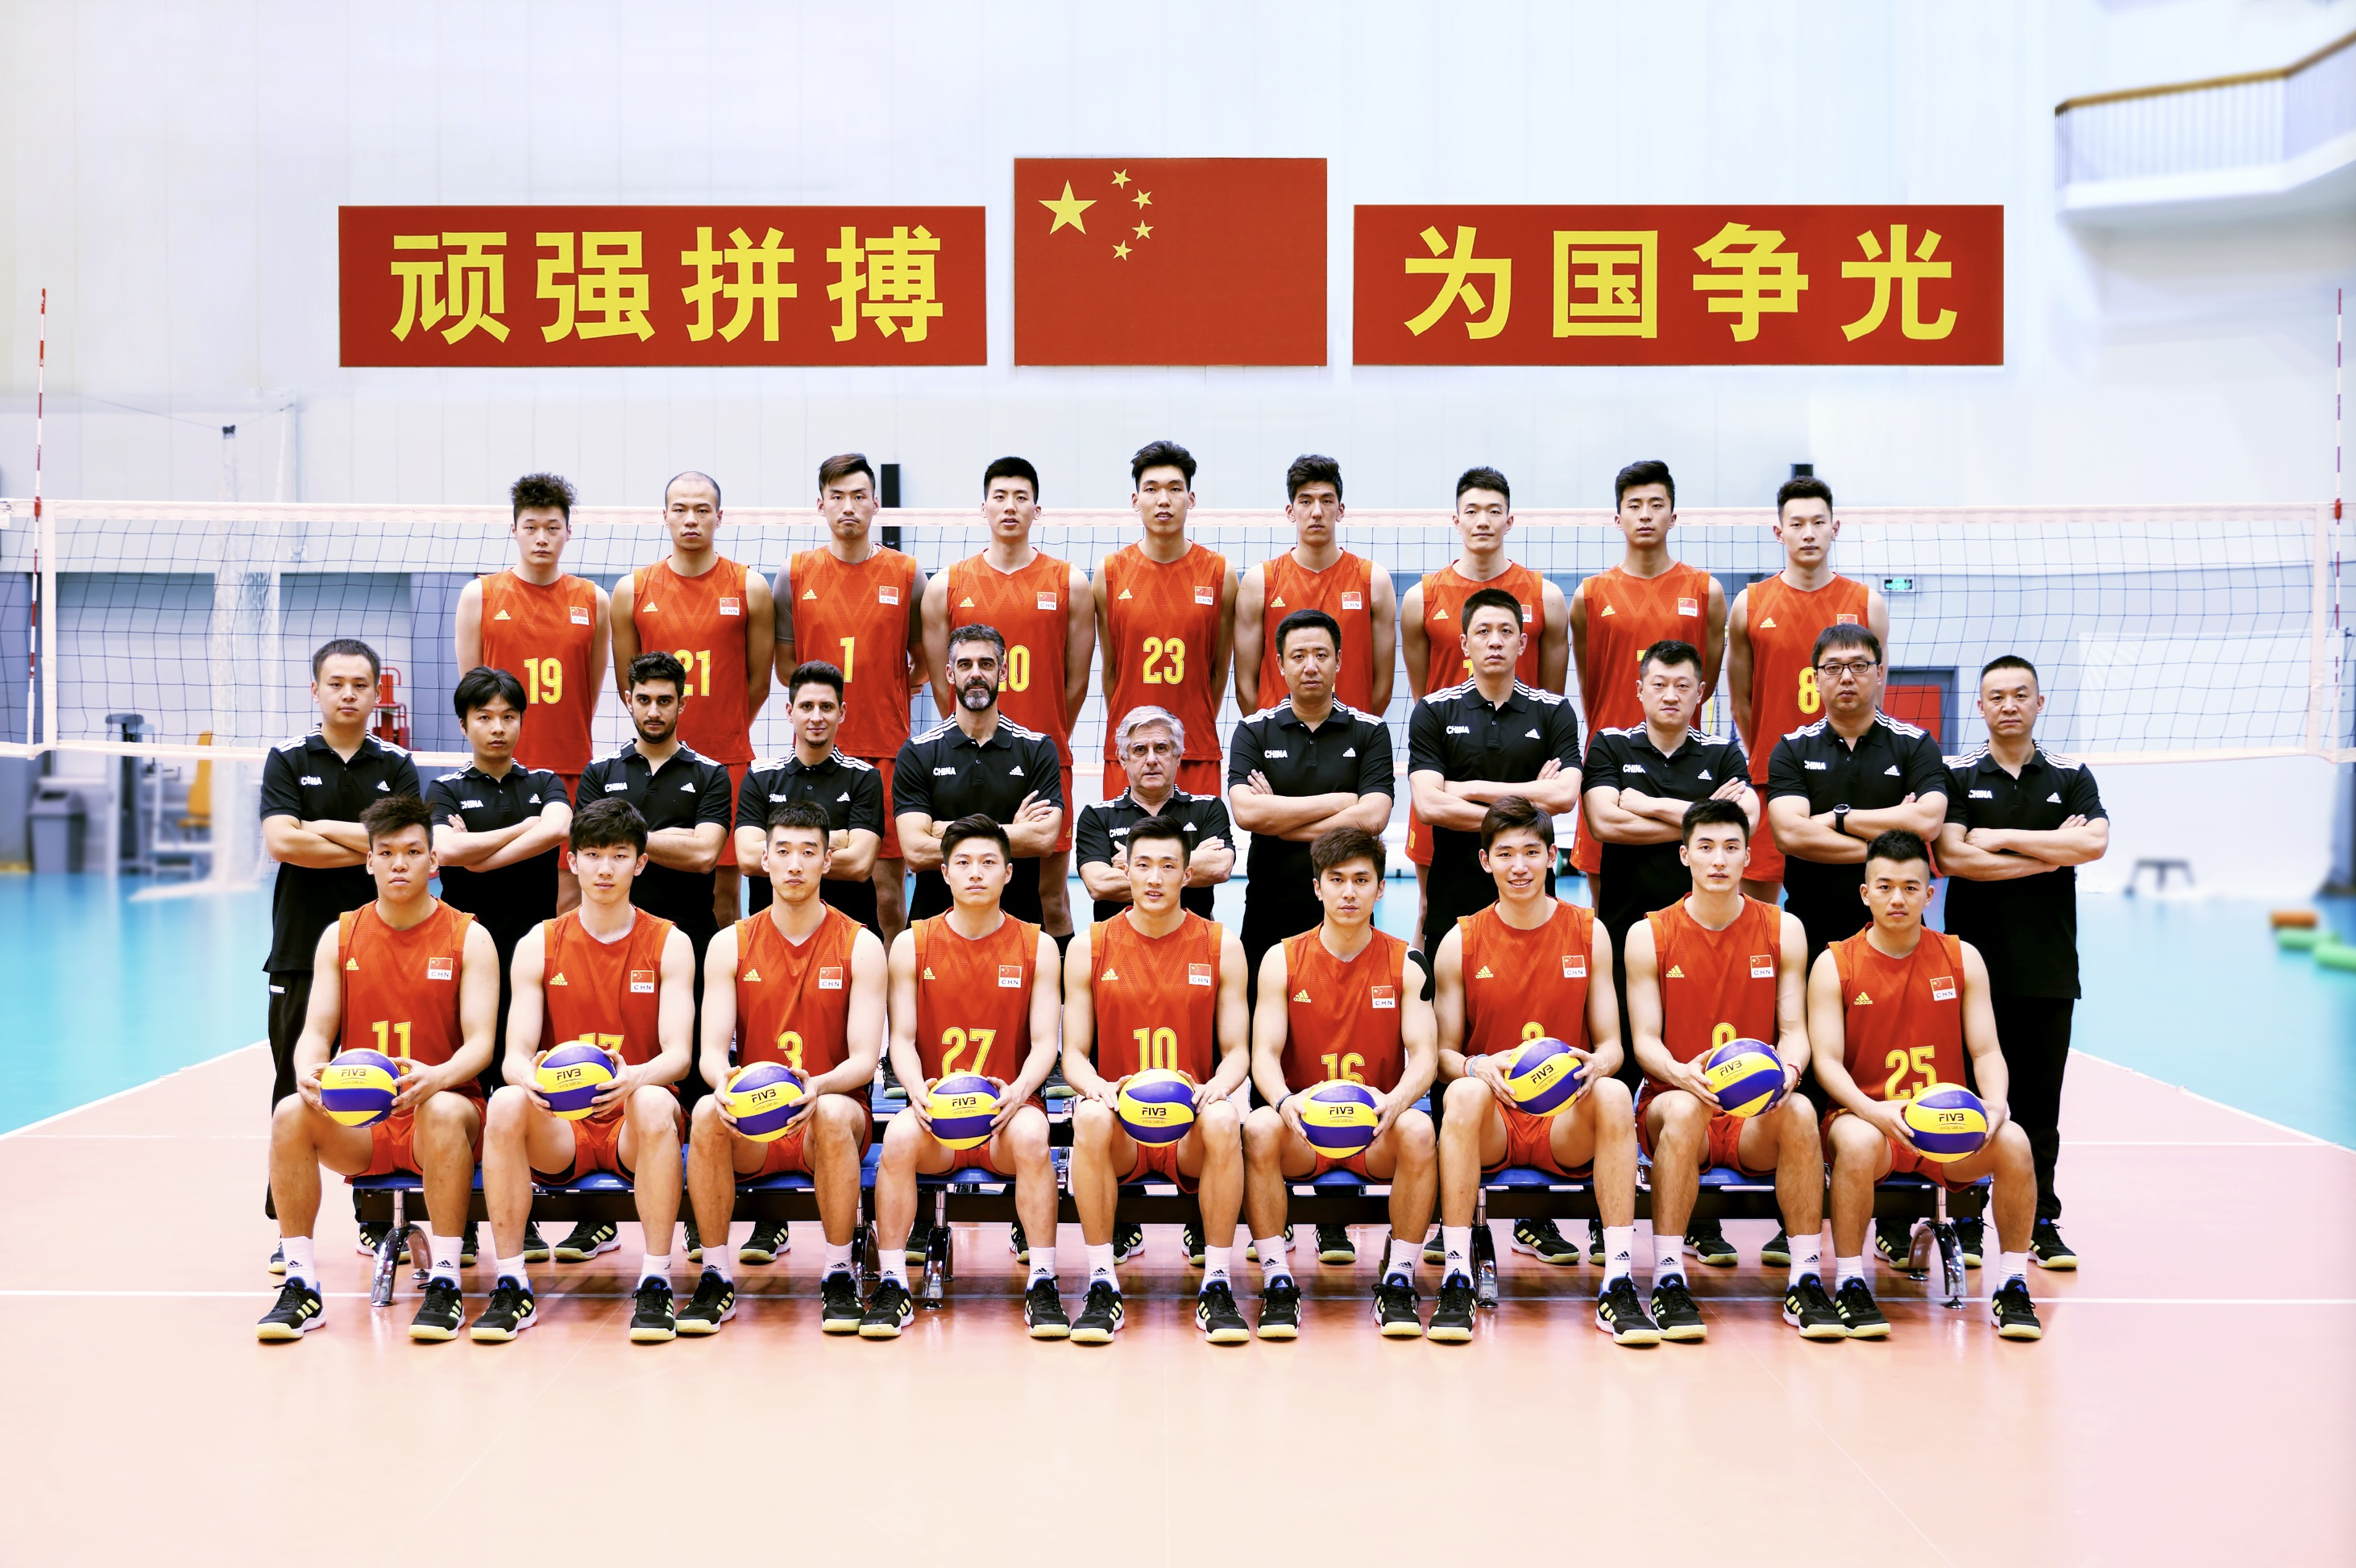 Fivb Volleyball Nations League 2018 Men S Teams Overview China Volleyball Nations League 2021